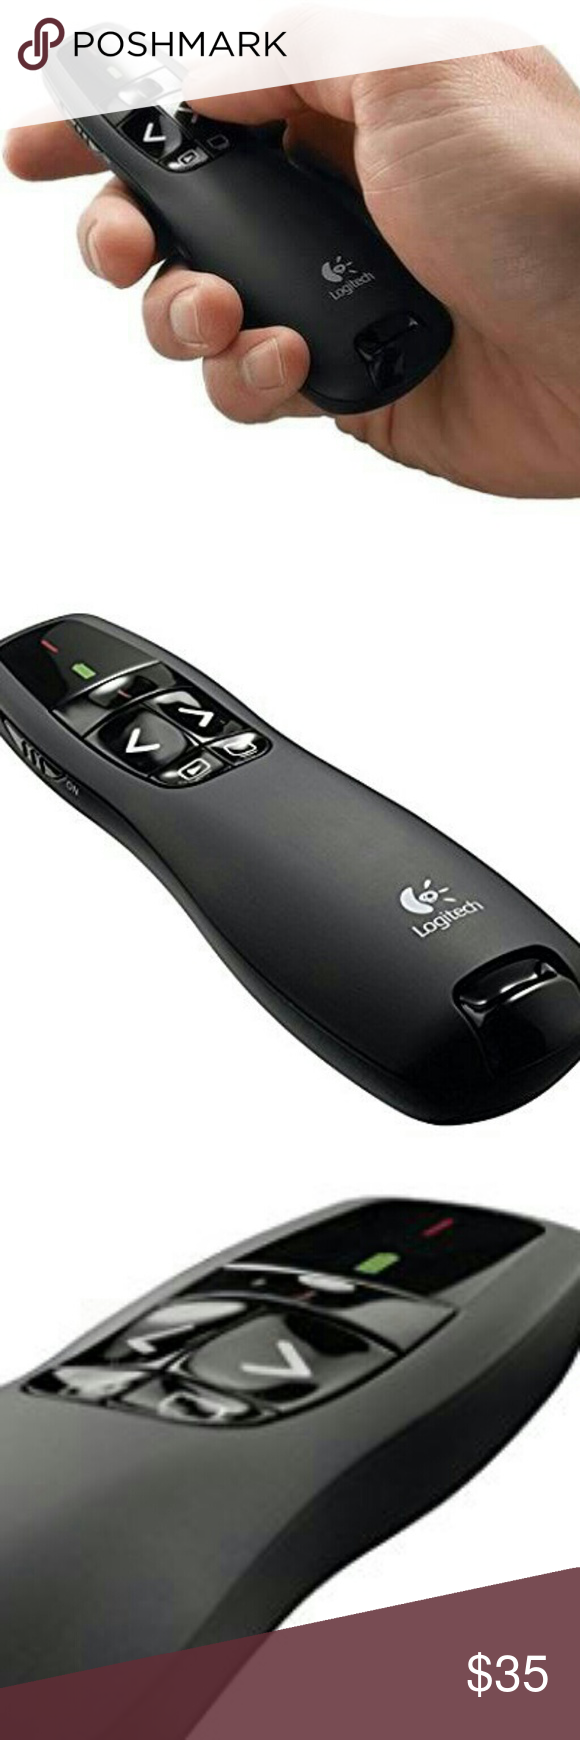 Logitech Wireless Presenter R400 Withlaser Pointer Bright Red